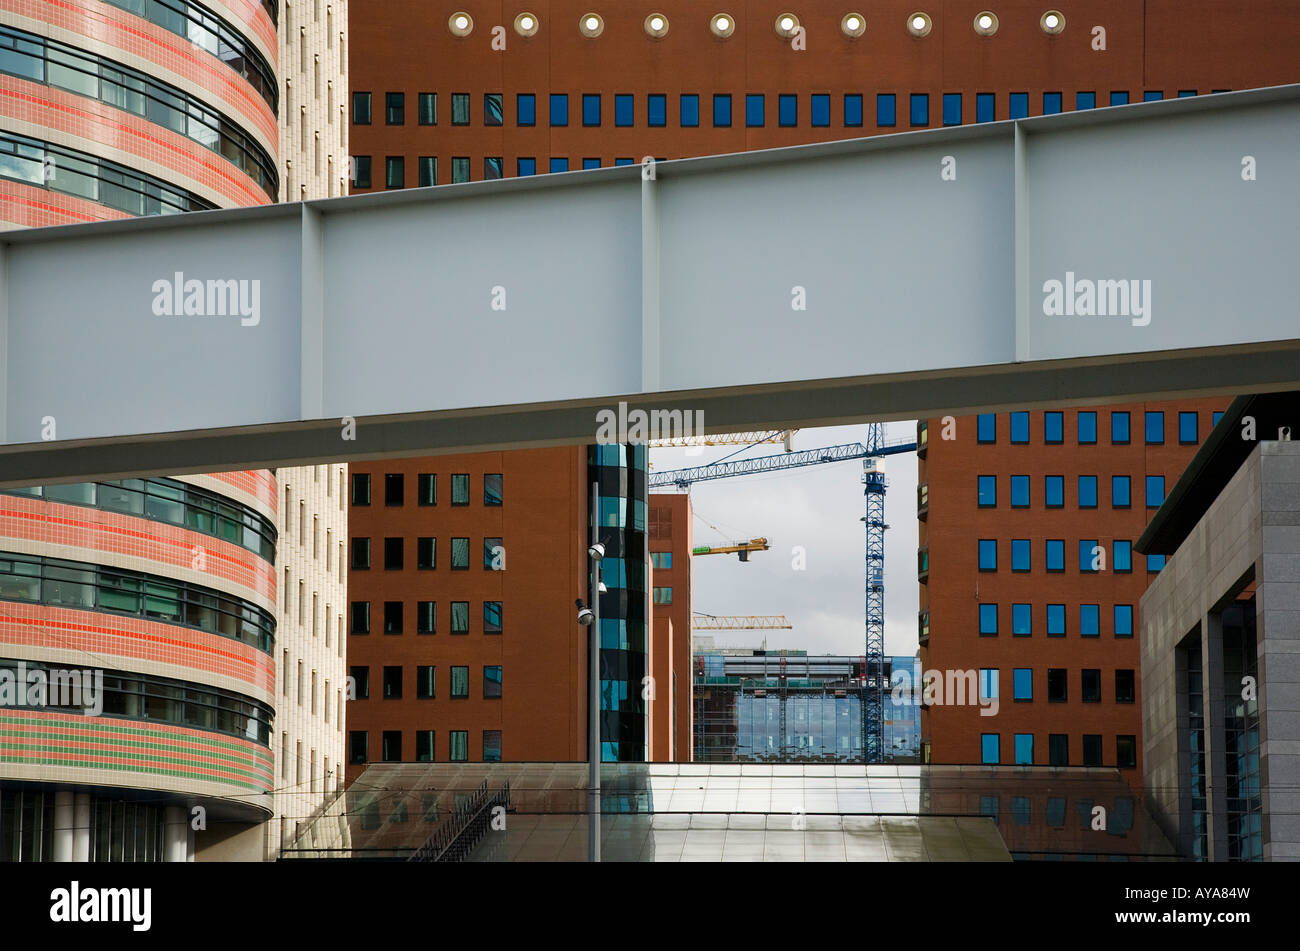 Left a buidling of ABN AMRO The public prosecutor s office of rotterdam. renovating area of rotterdam Stock Photo